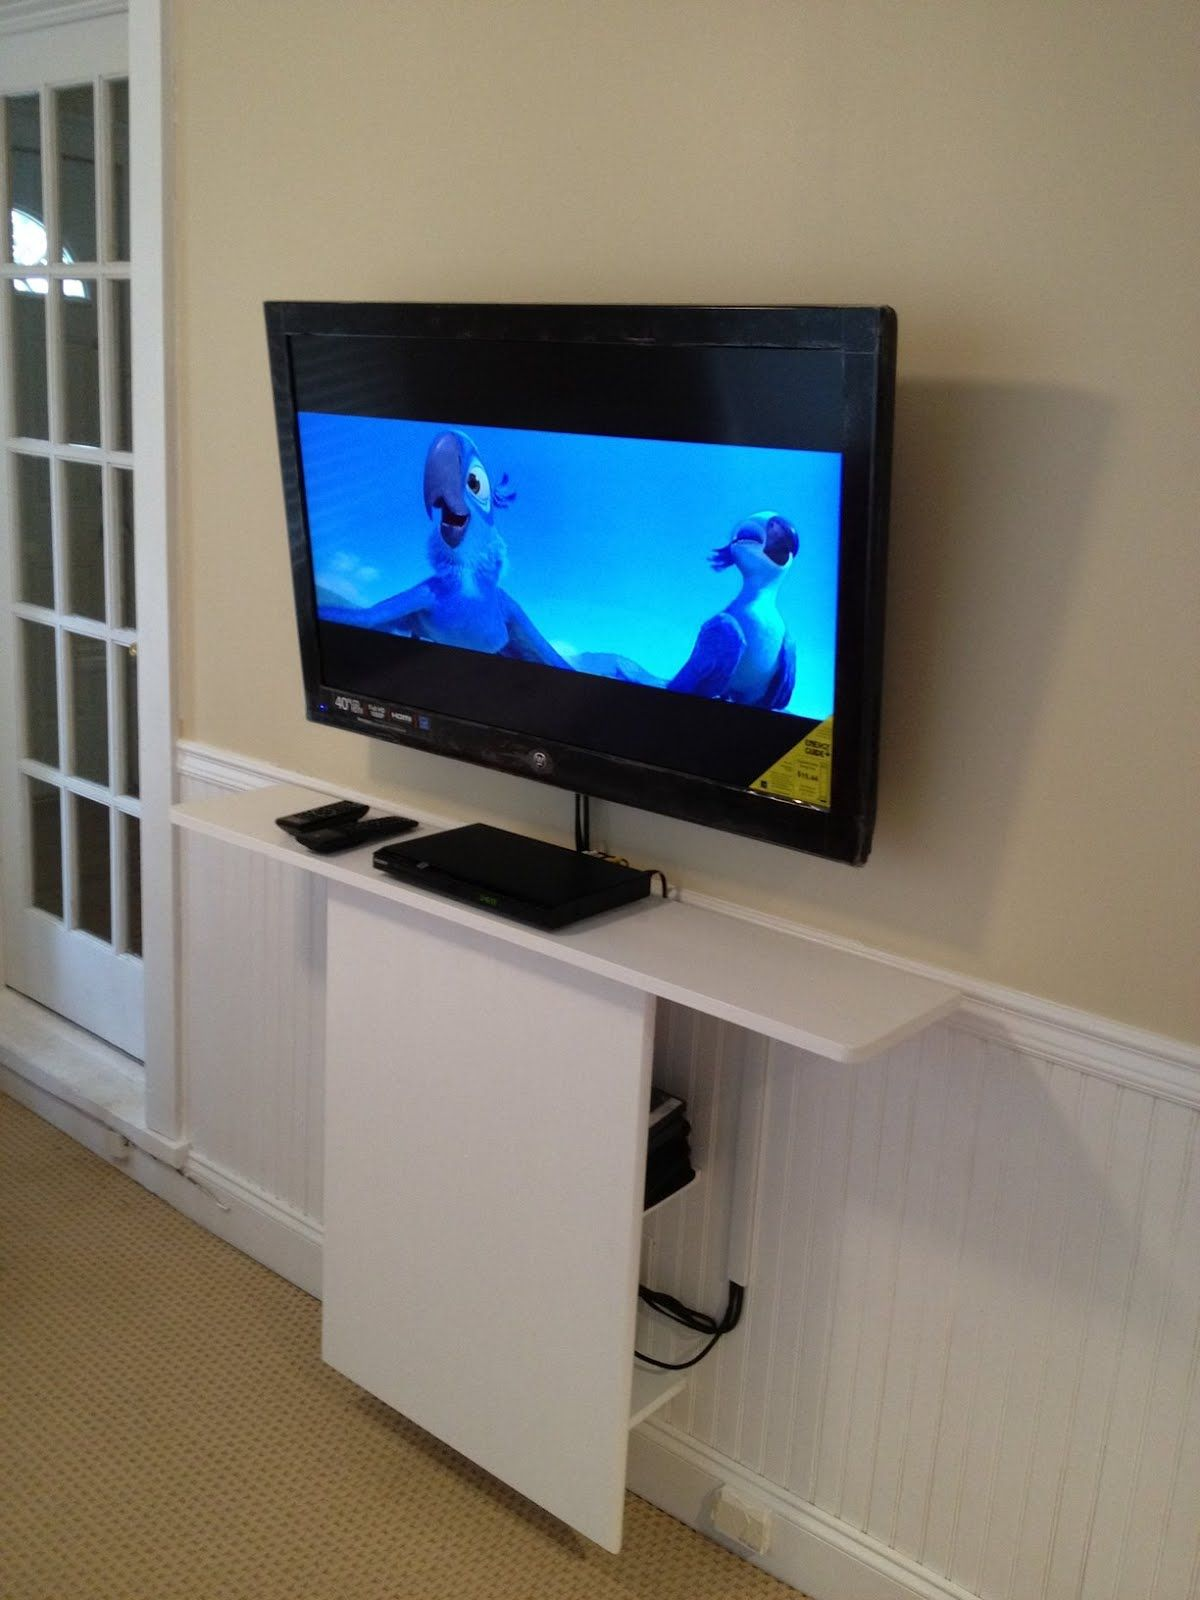 Astonishing Leksvik Floating Tv Stand Home Organization Wall Mount Download Free Architecture Designs Grimeyleaguecom